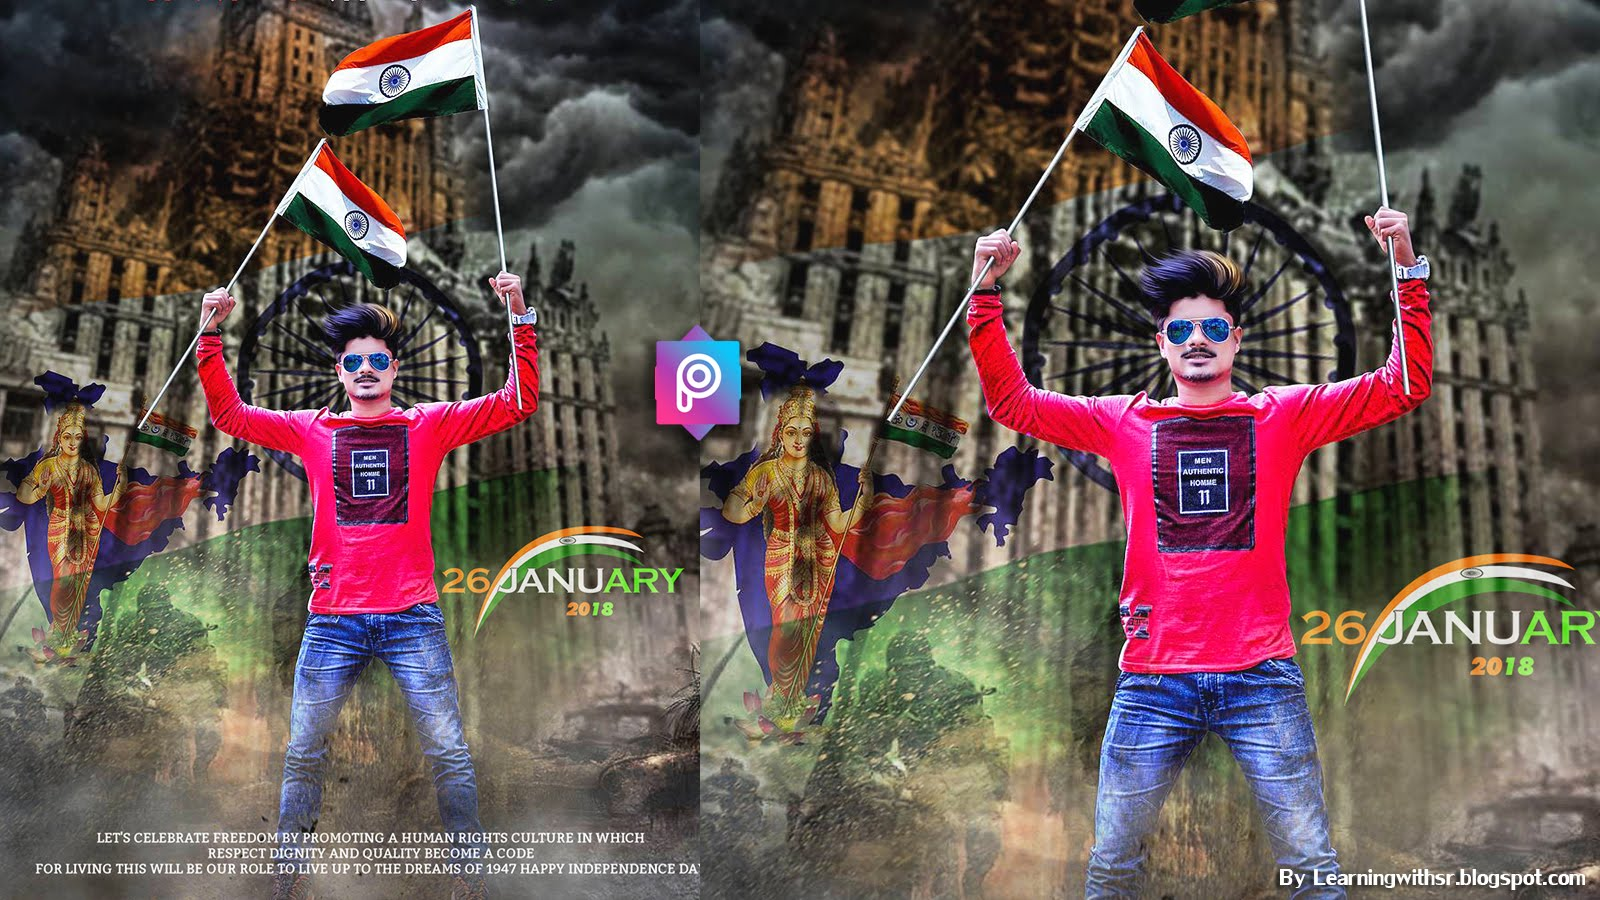 26 January 2018 Republic Day Picsart Photo Editing Republic Day Pic